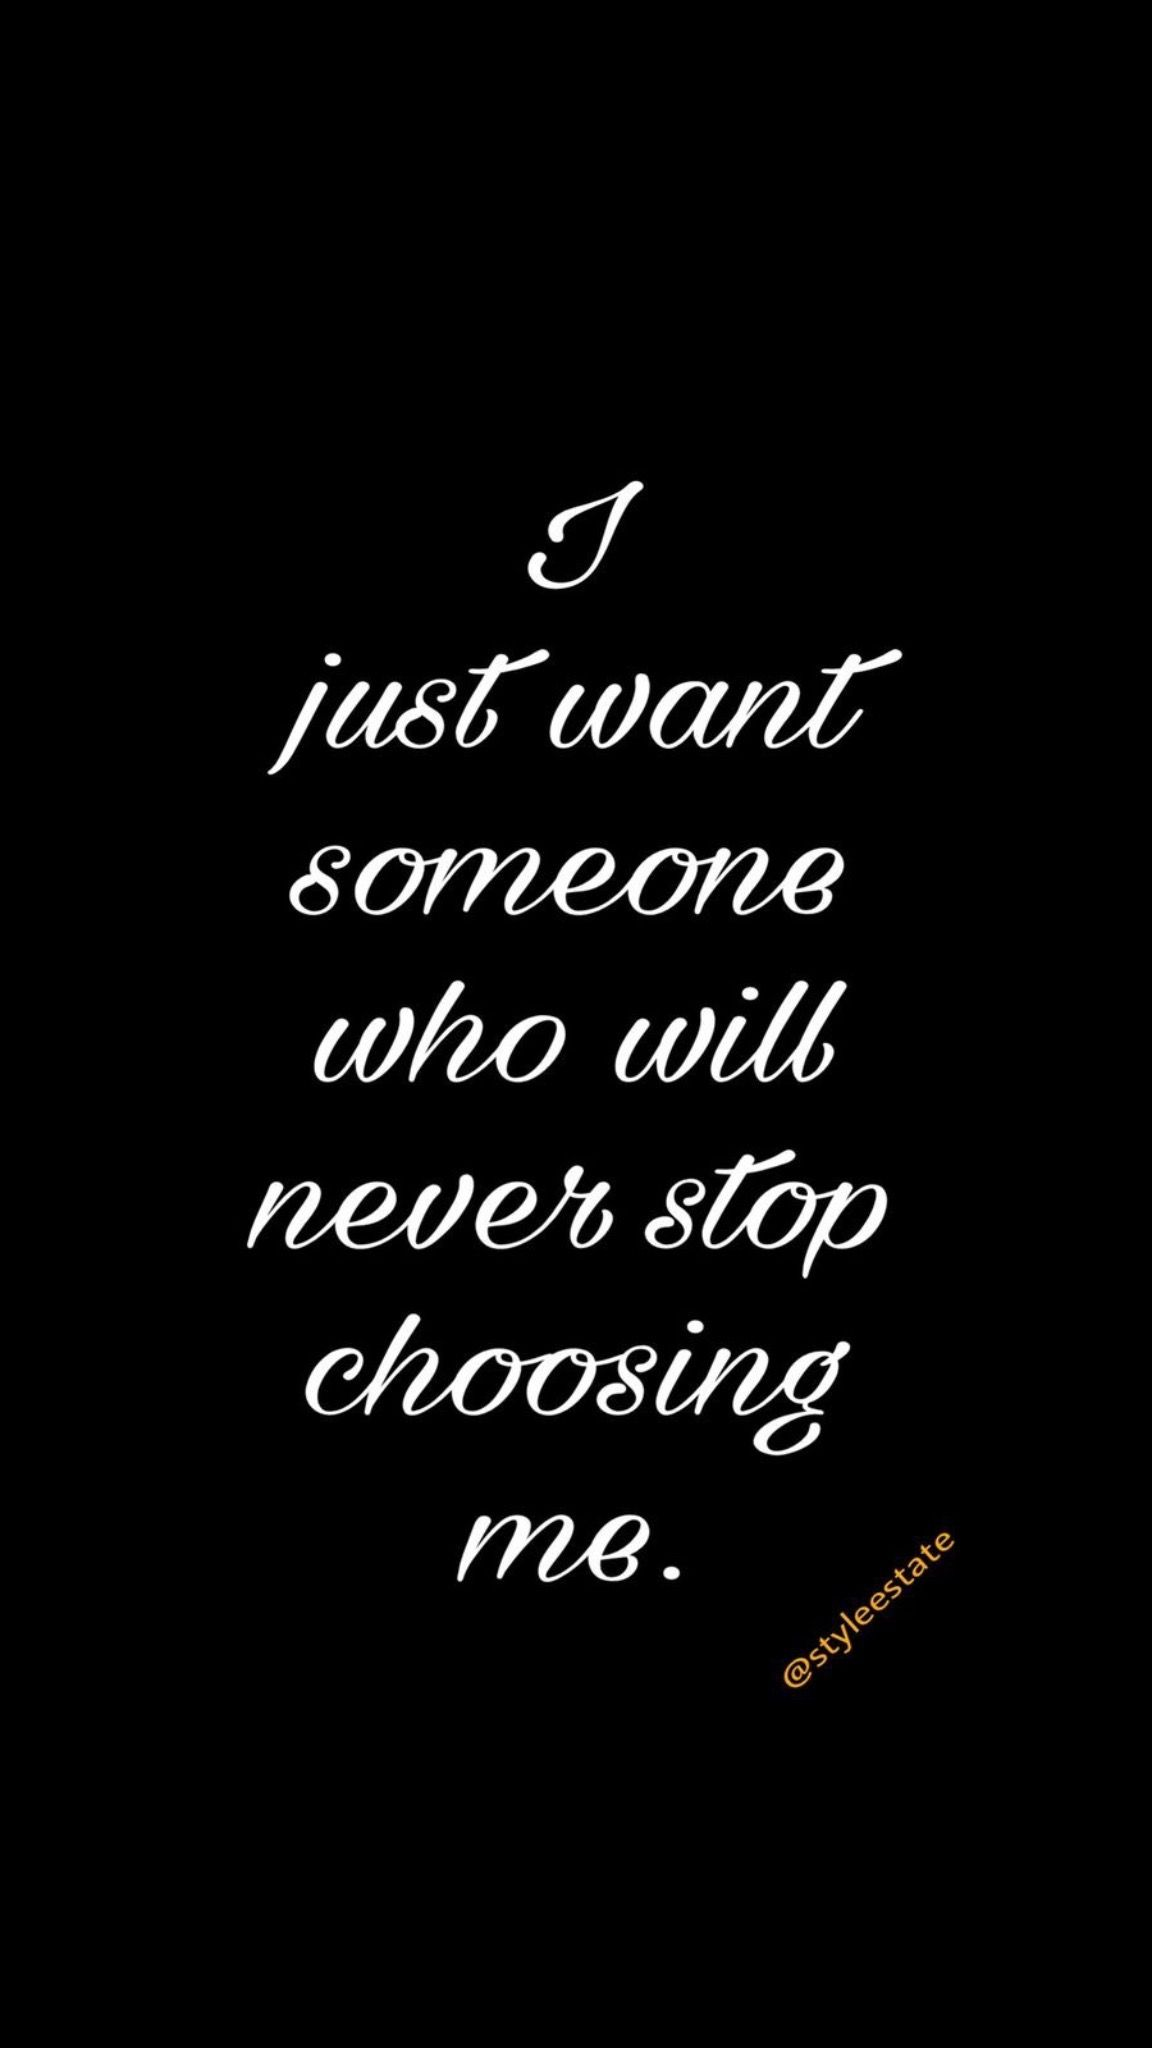 I just want someone who will never stop choosing me